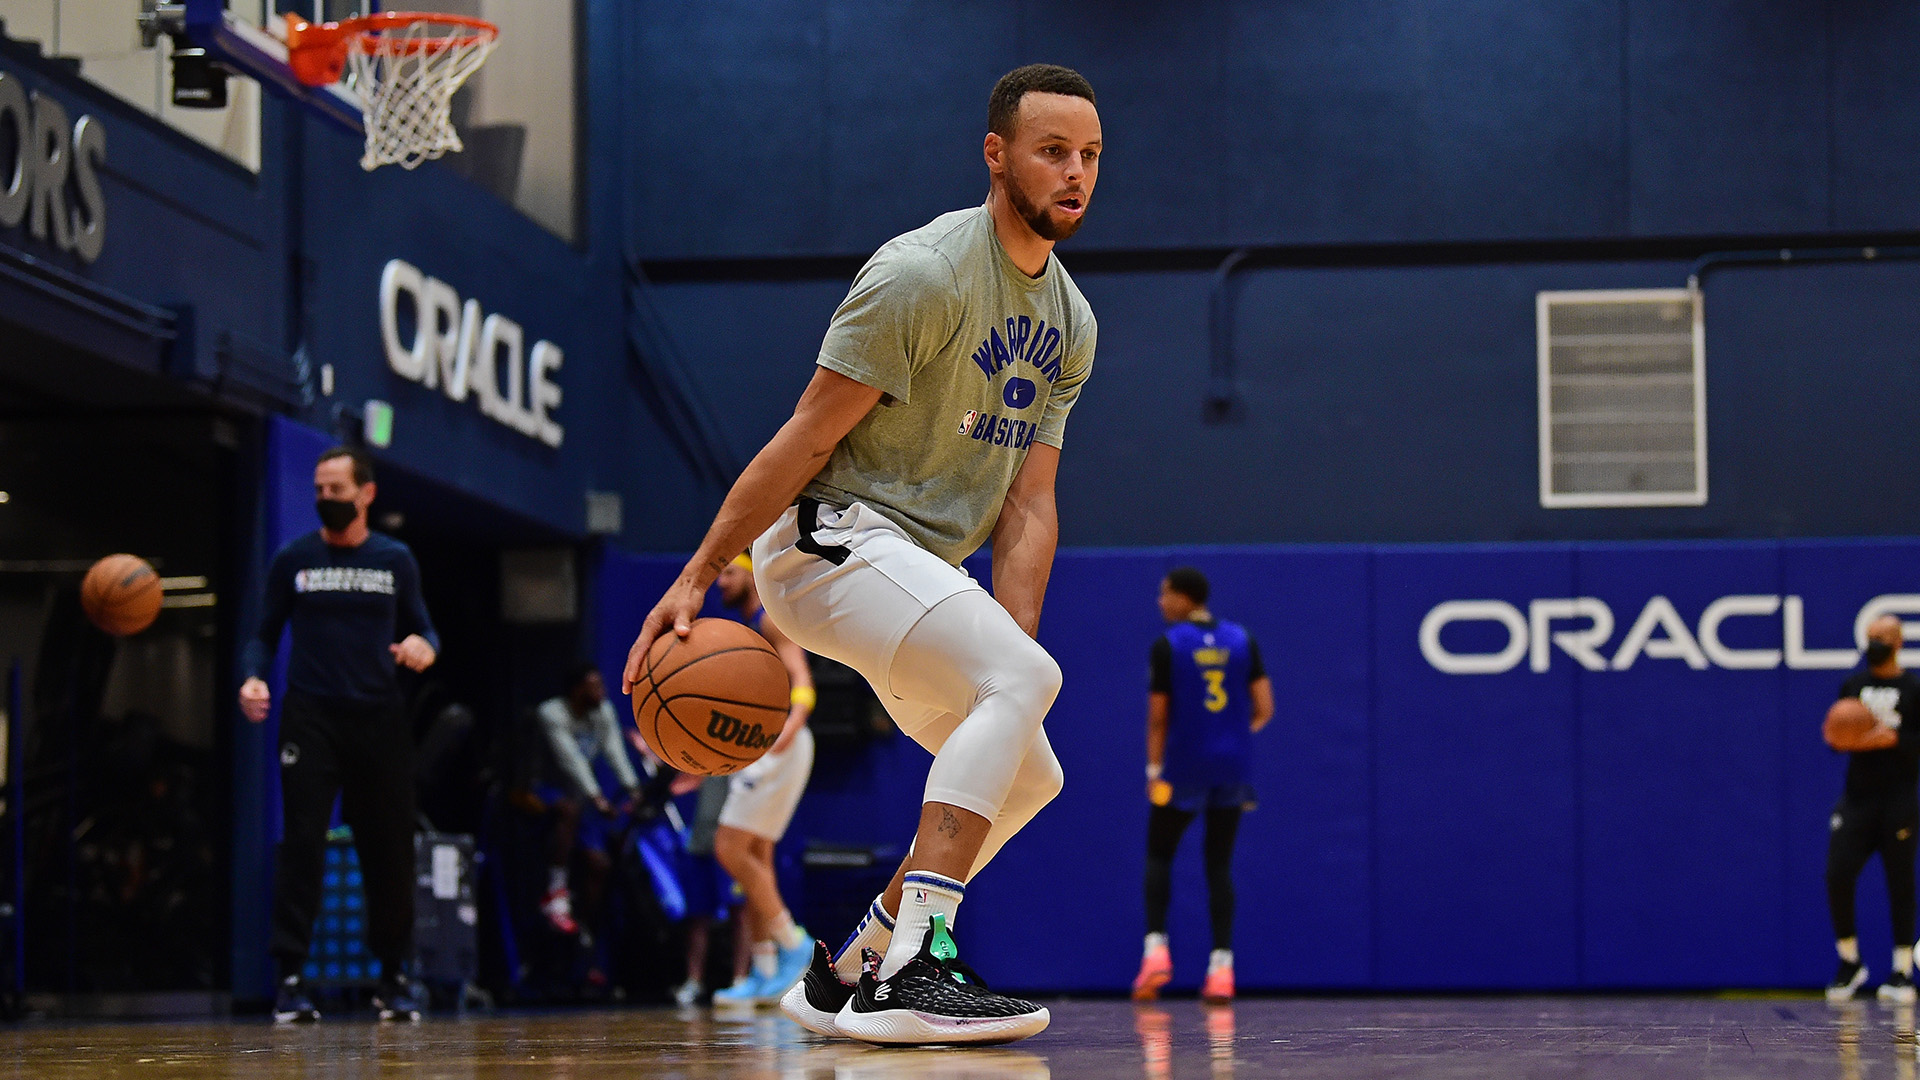 Steph's new workout could make him more lethal